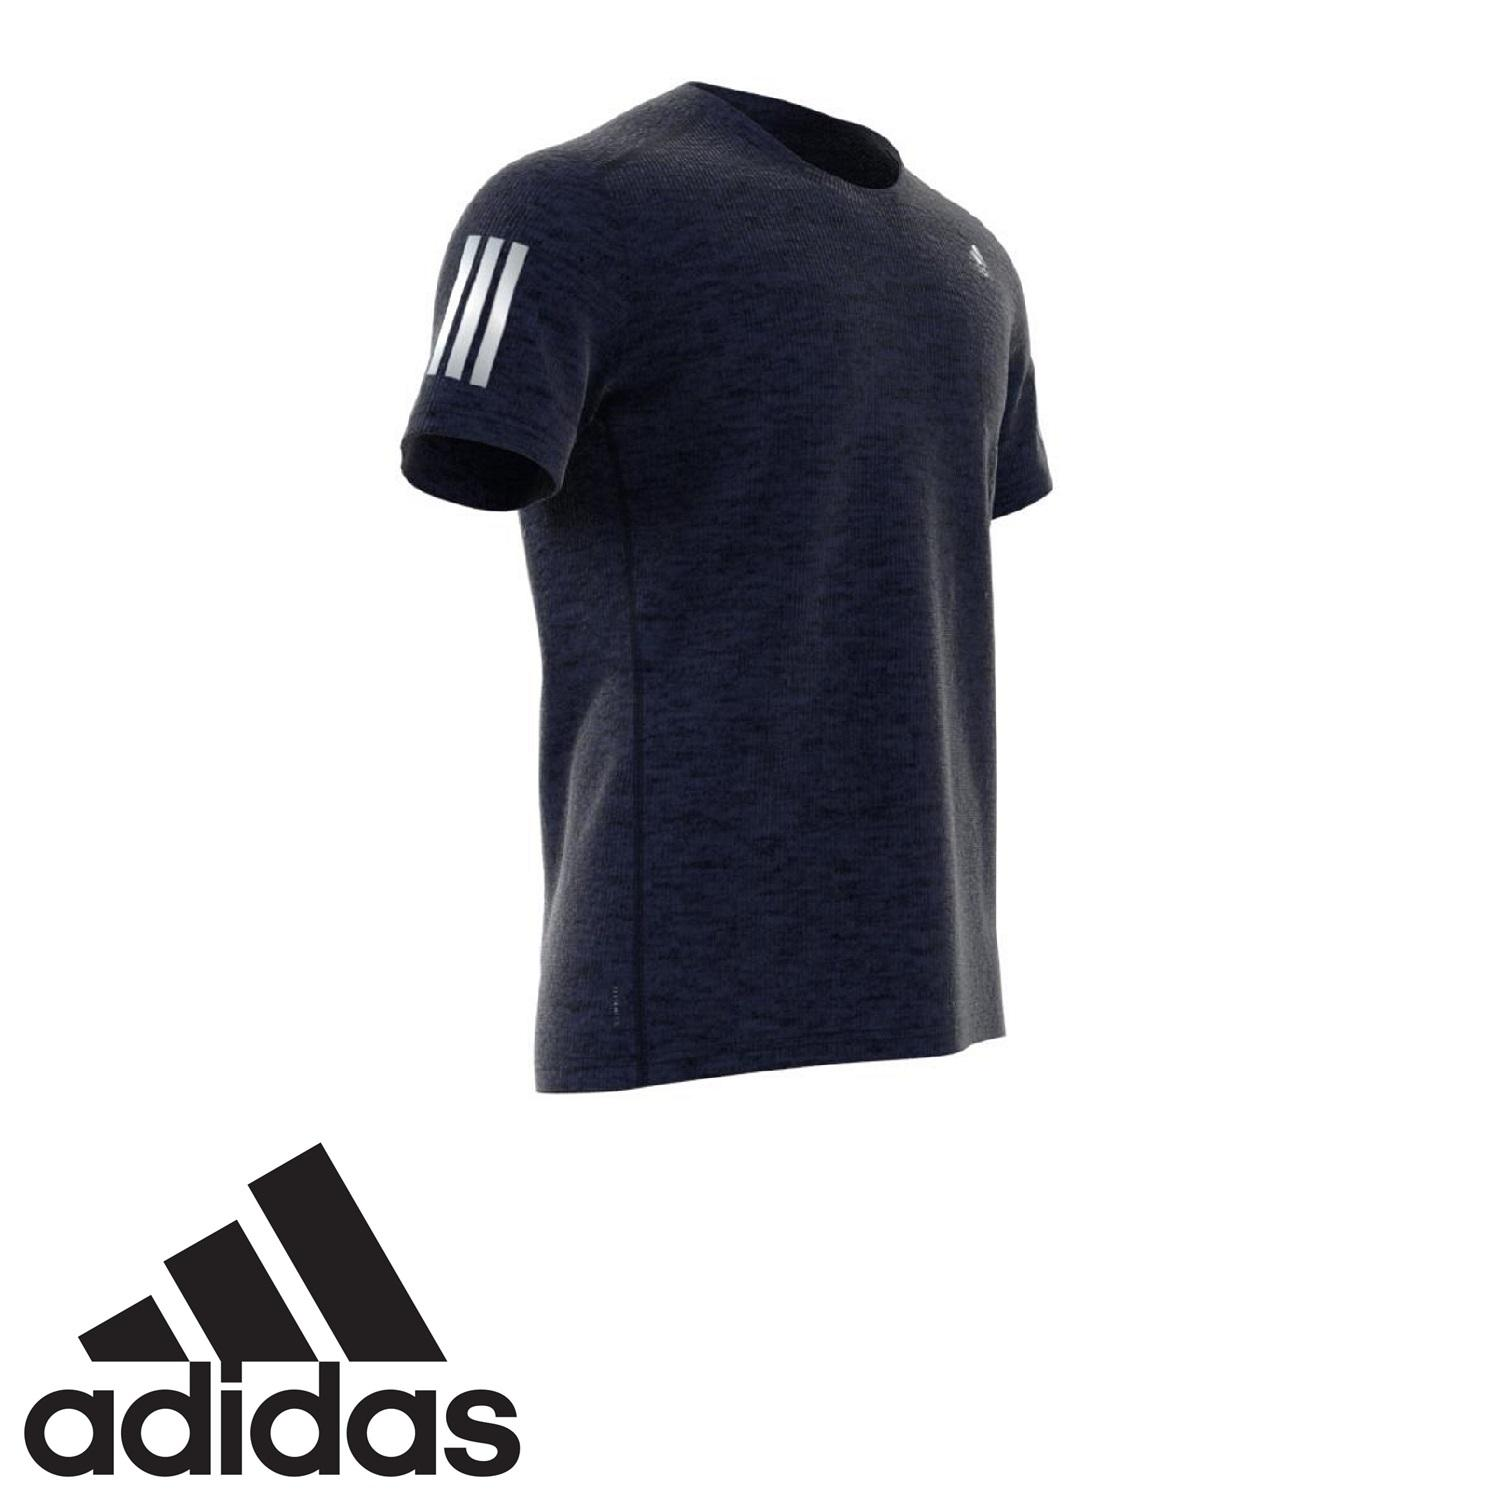 e5f883a3 Adidas Philippines - Adidas Sports T Shirts for Men for sale ...